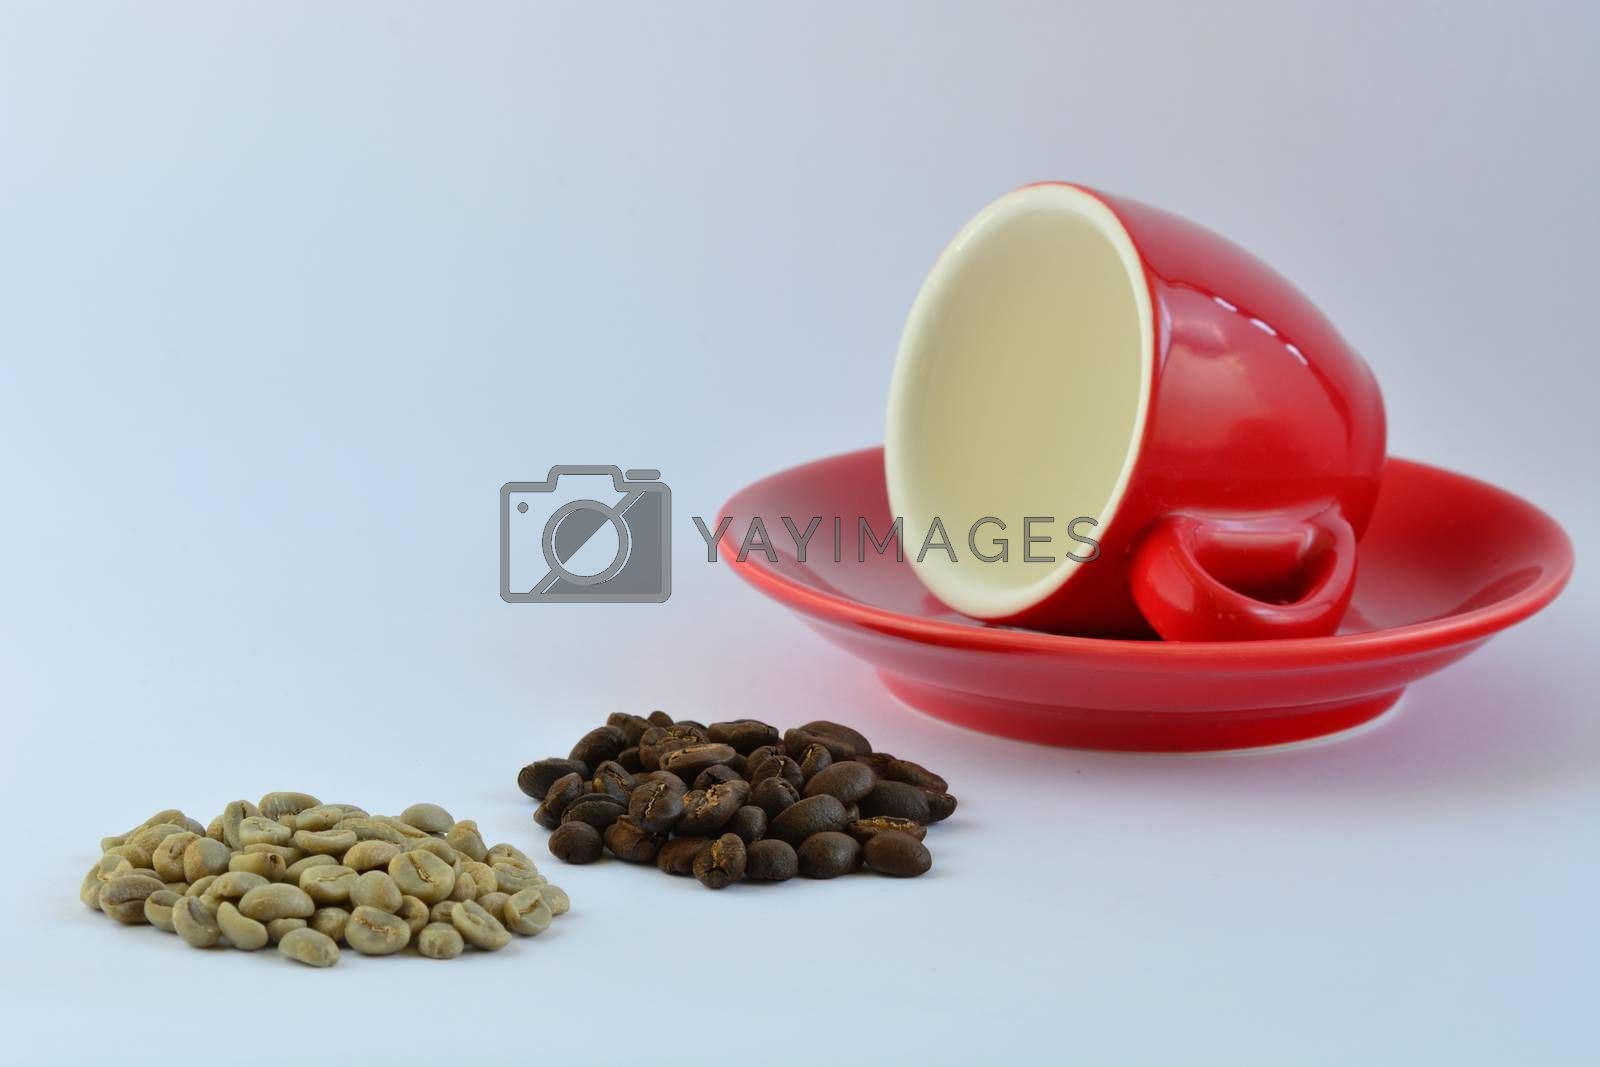 A close-up photo of a bright red espresso coffee cup, some green coffee beans and some roasted coffee beans on white background.